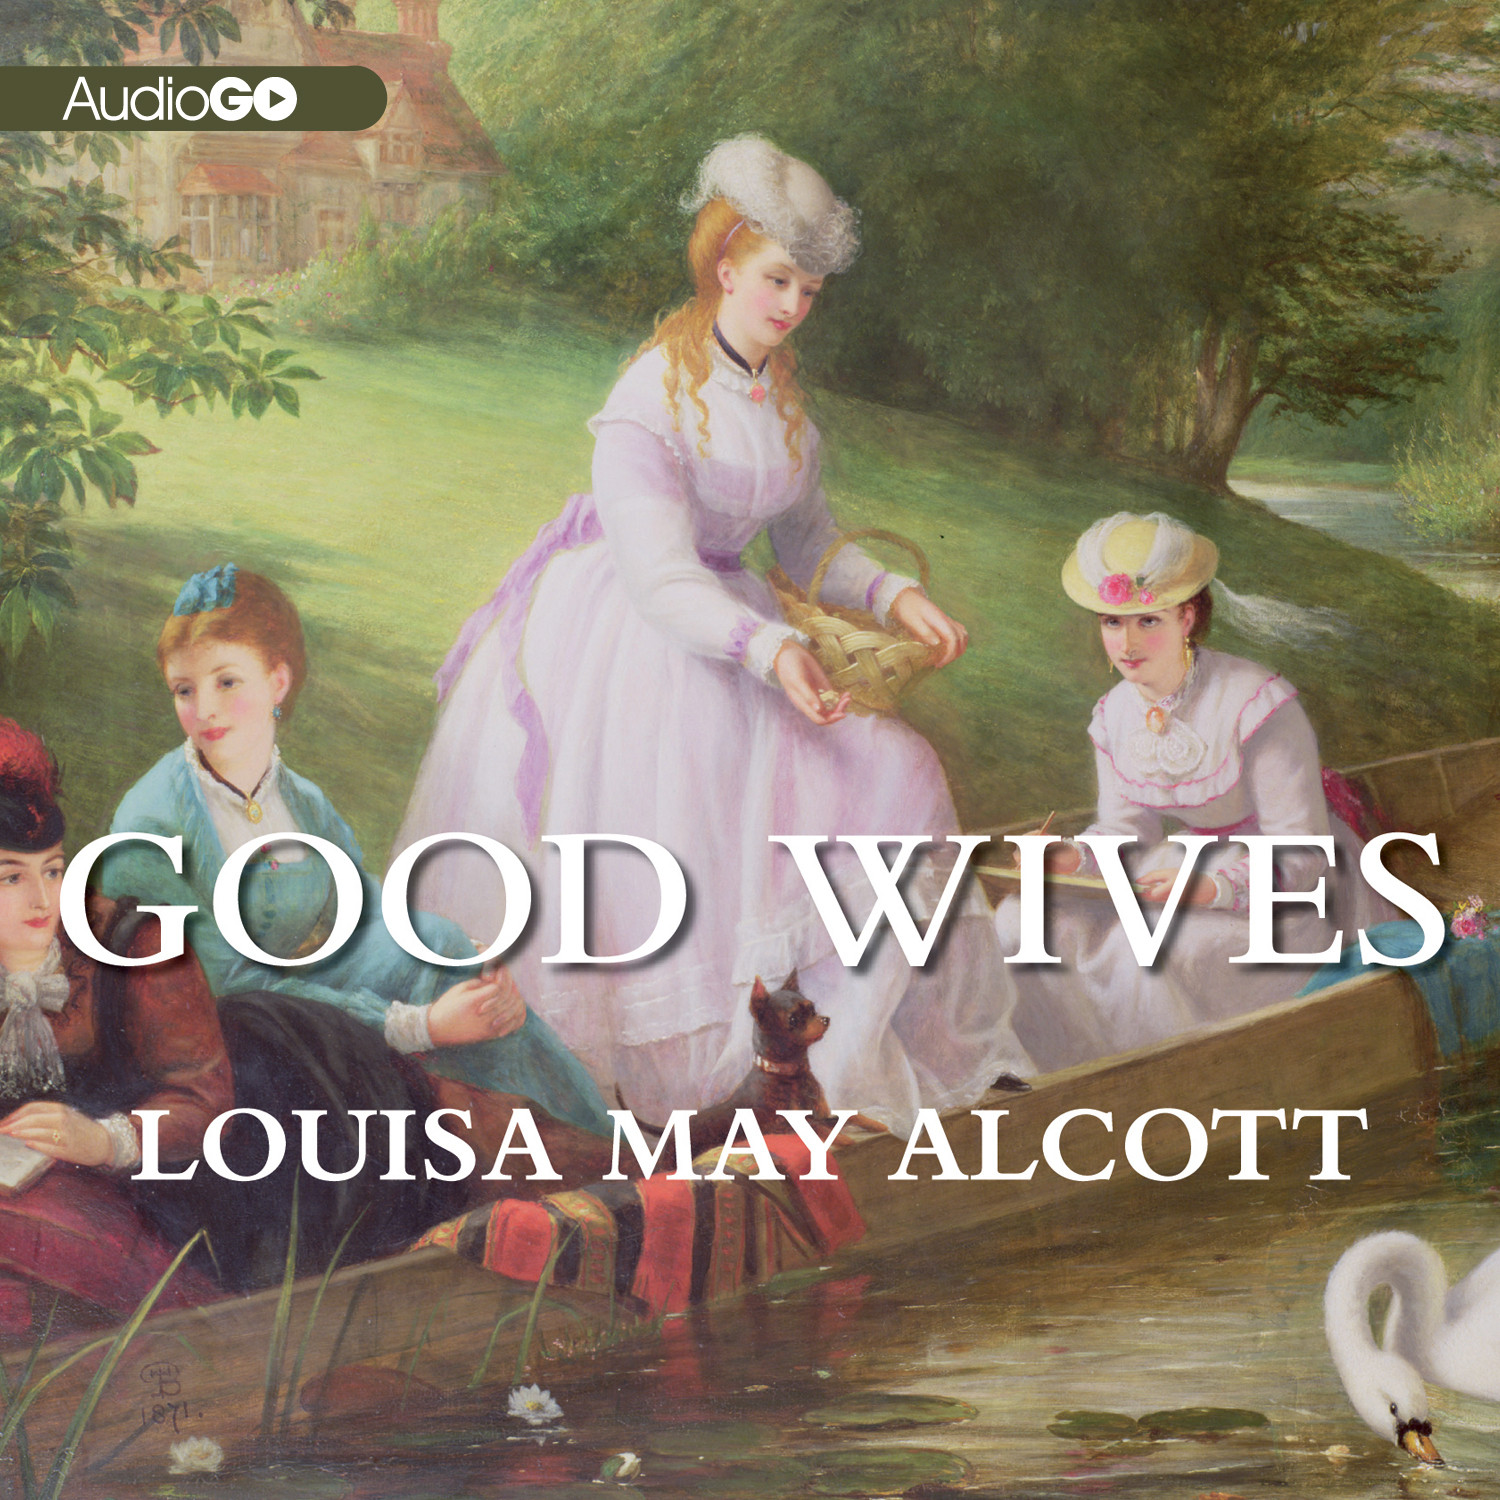 Printable Good Wives: Little Women, Part II Audiobook Cover Art